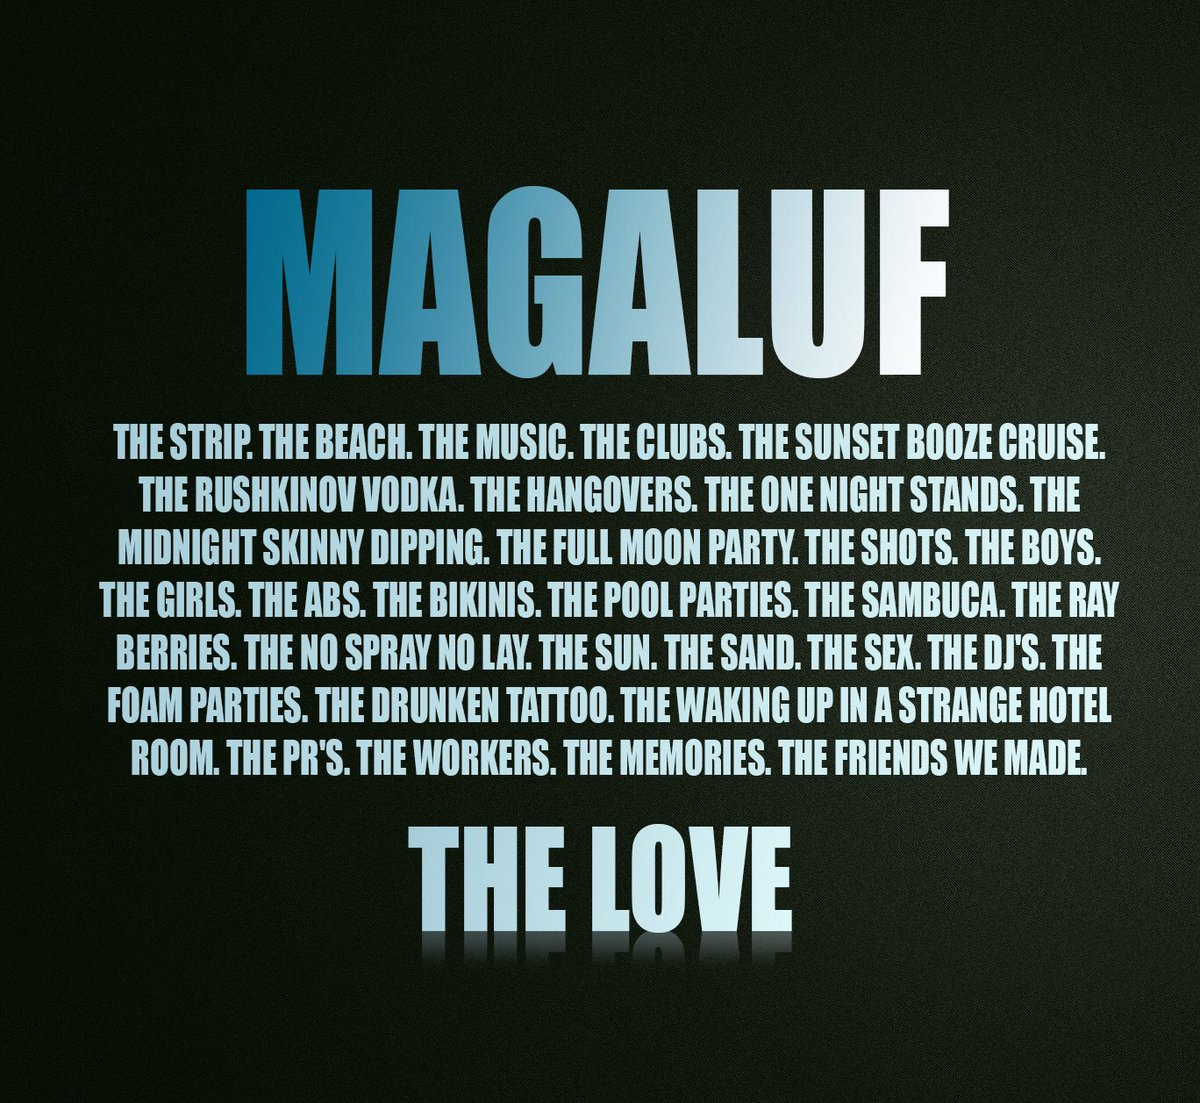 It&#39;s a Magaluf thing!   #Magaluf #Maga #Maga17<br>http://pic.twitter.com/WO4lpYvprd